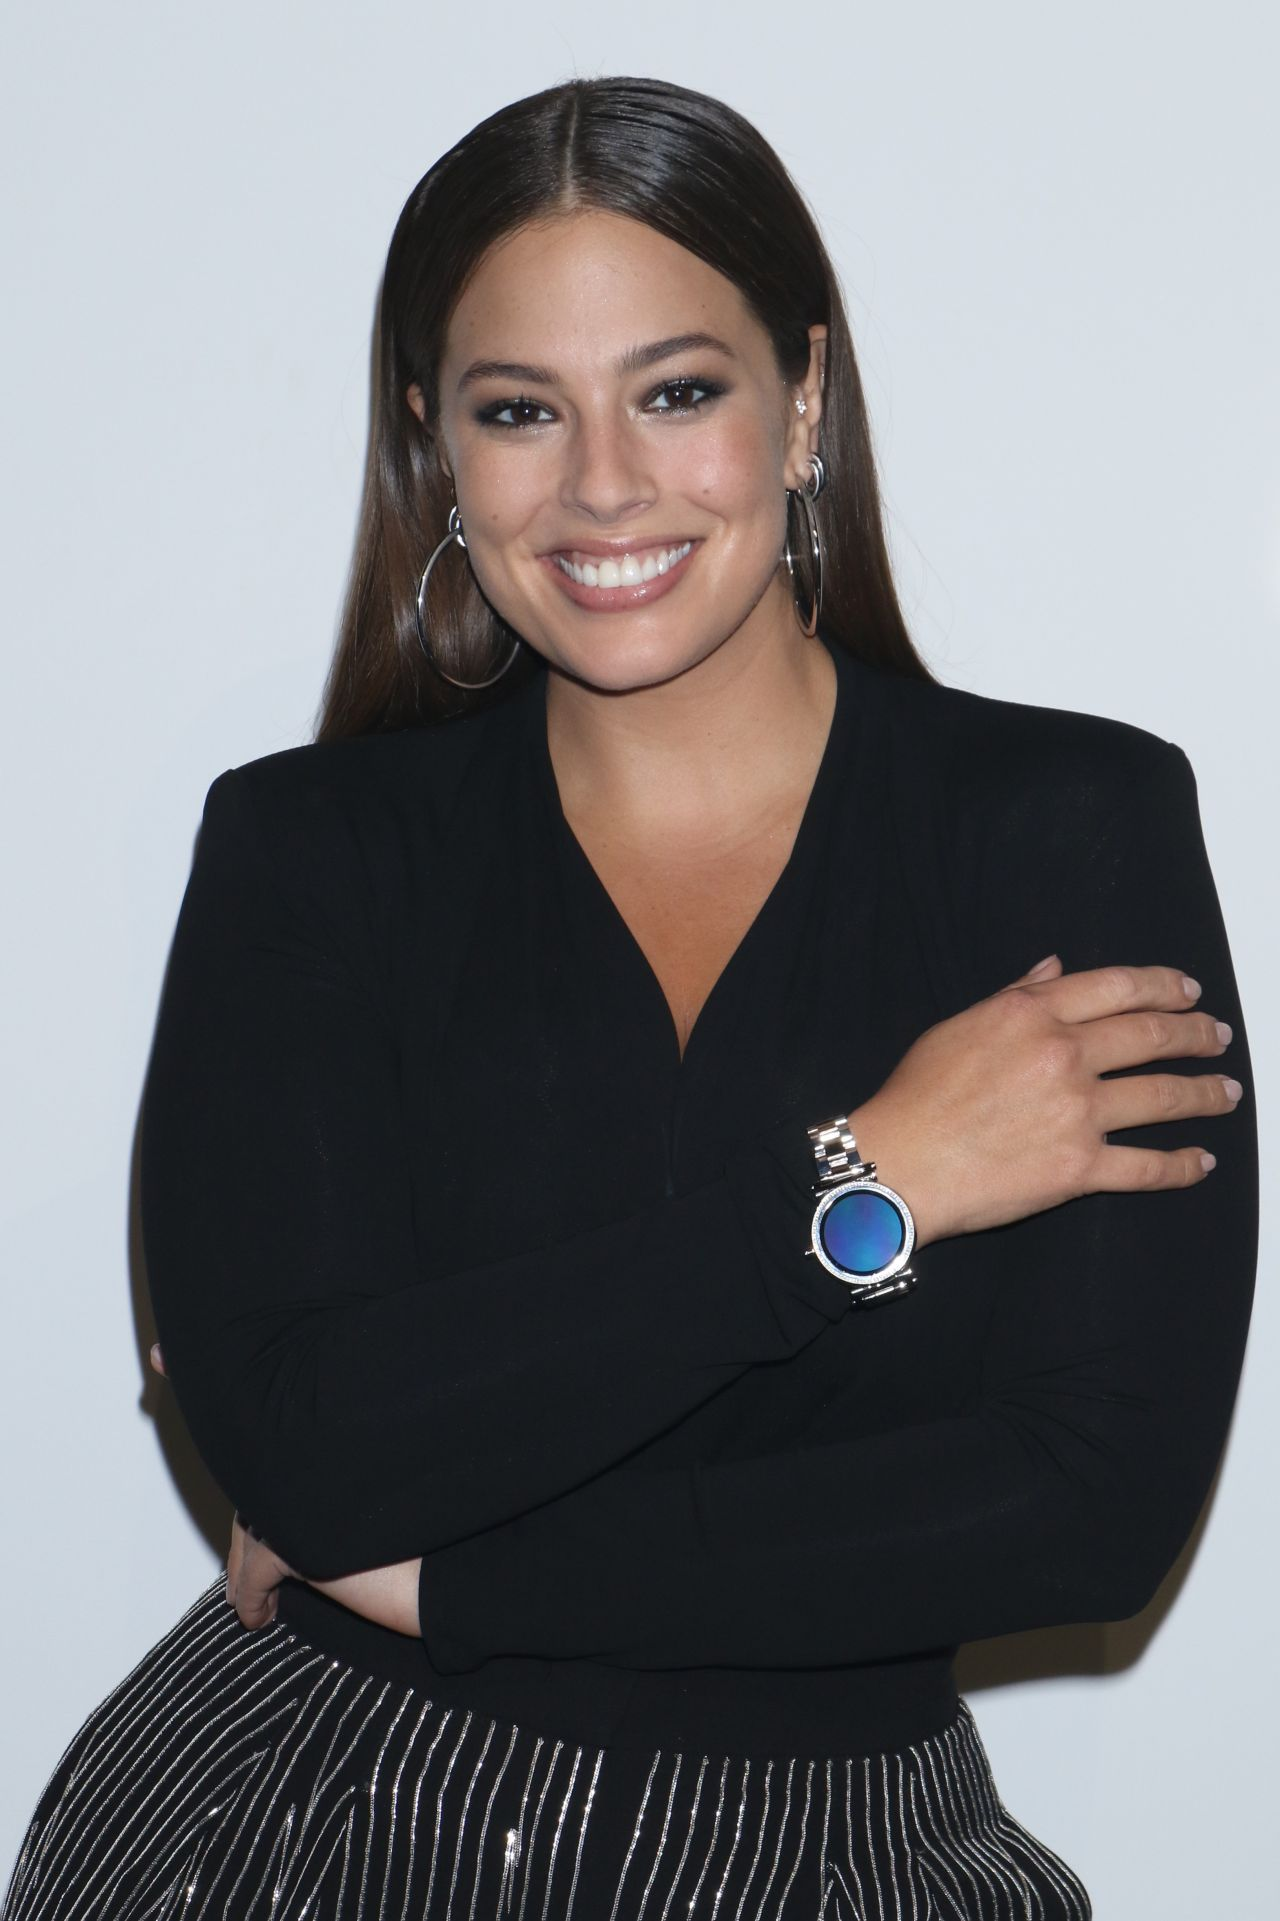 ashley graham - photo #30